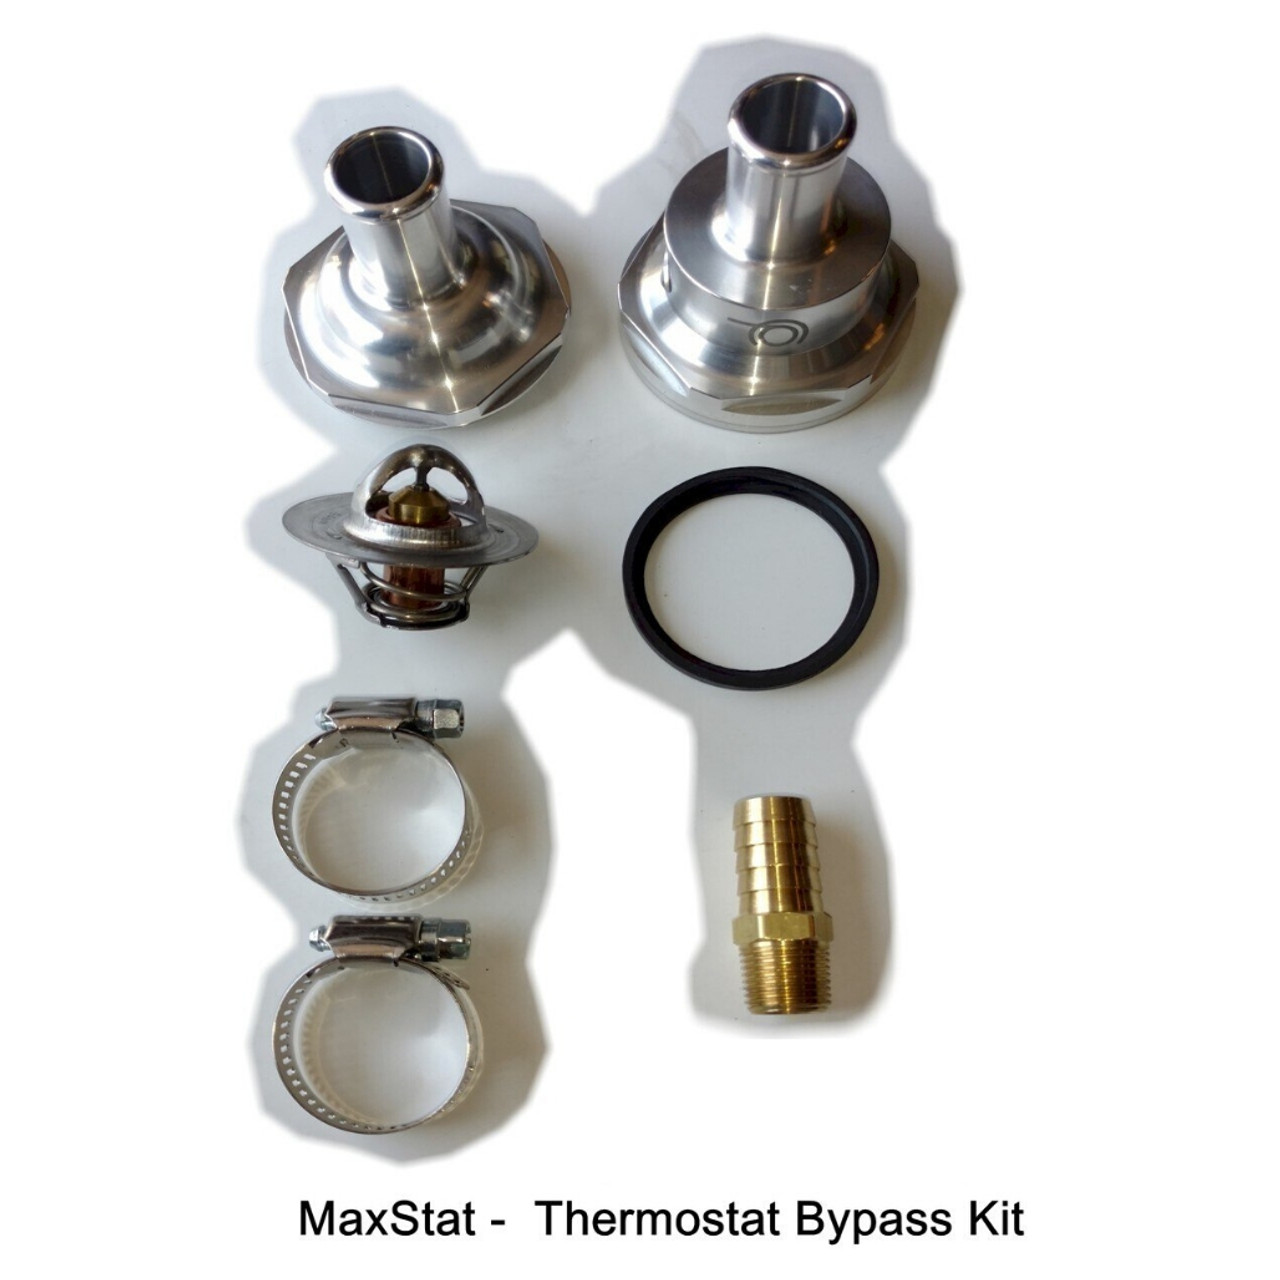 When ordered as a standalone kit, the MaxStat includes additional hardware to complete the installation.     The MaxStat can be installed with virtually all heater kits on the market and can be done at any time.  The best part is you don't have remove the OEM thermostat which can take hours depending on the engine.